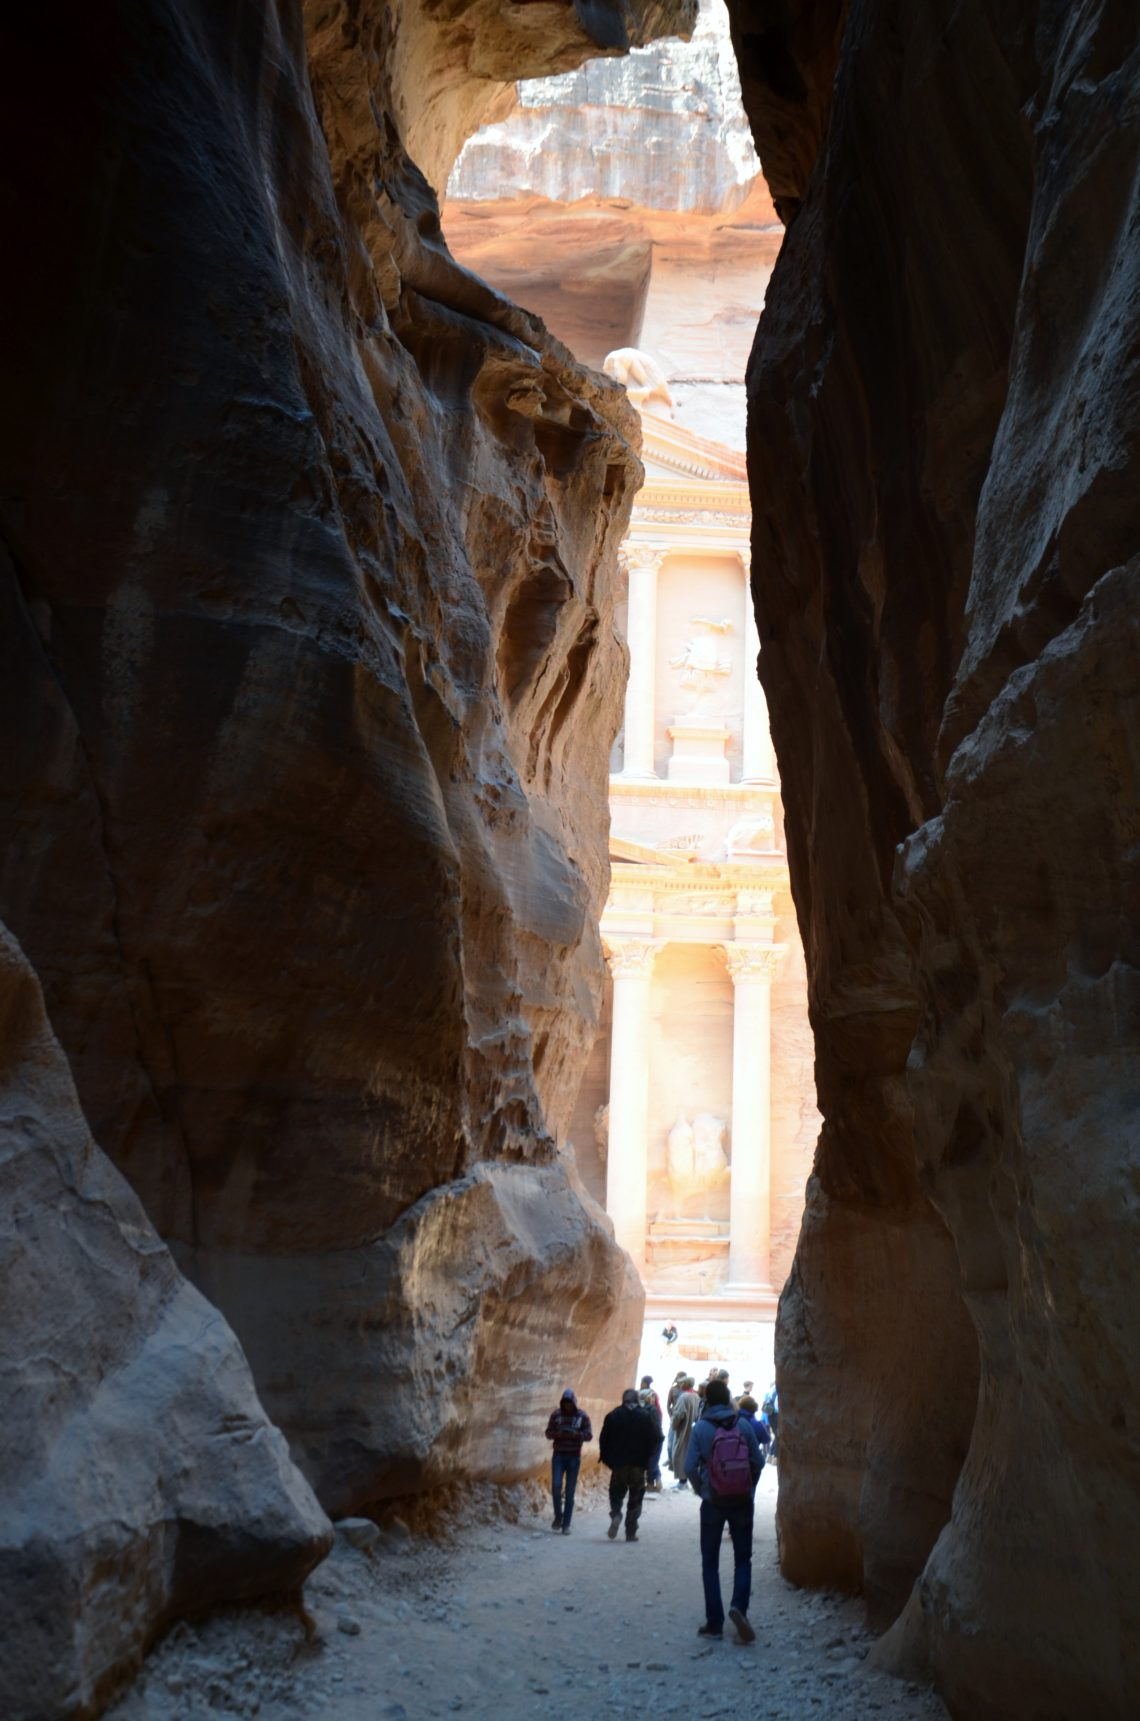 To show the first glimpses of the Treasury. A small canyon, rocks rising high. In front through the opening part of a building. In front lots of people walking. Tour through Jordan.